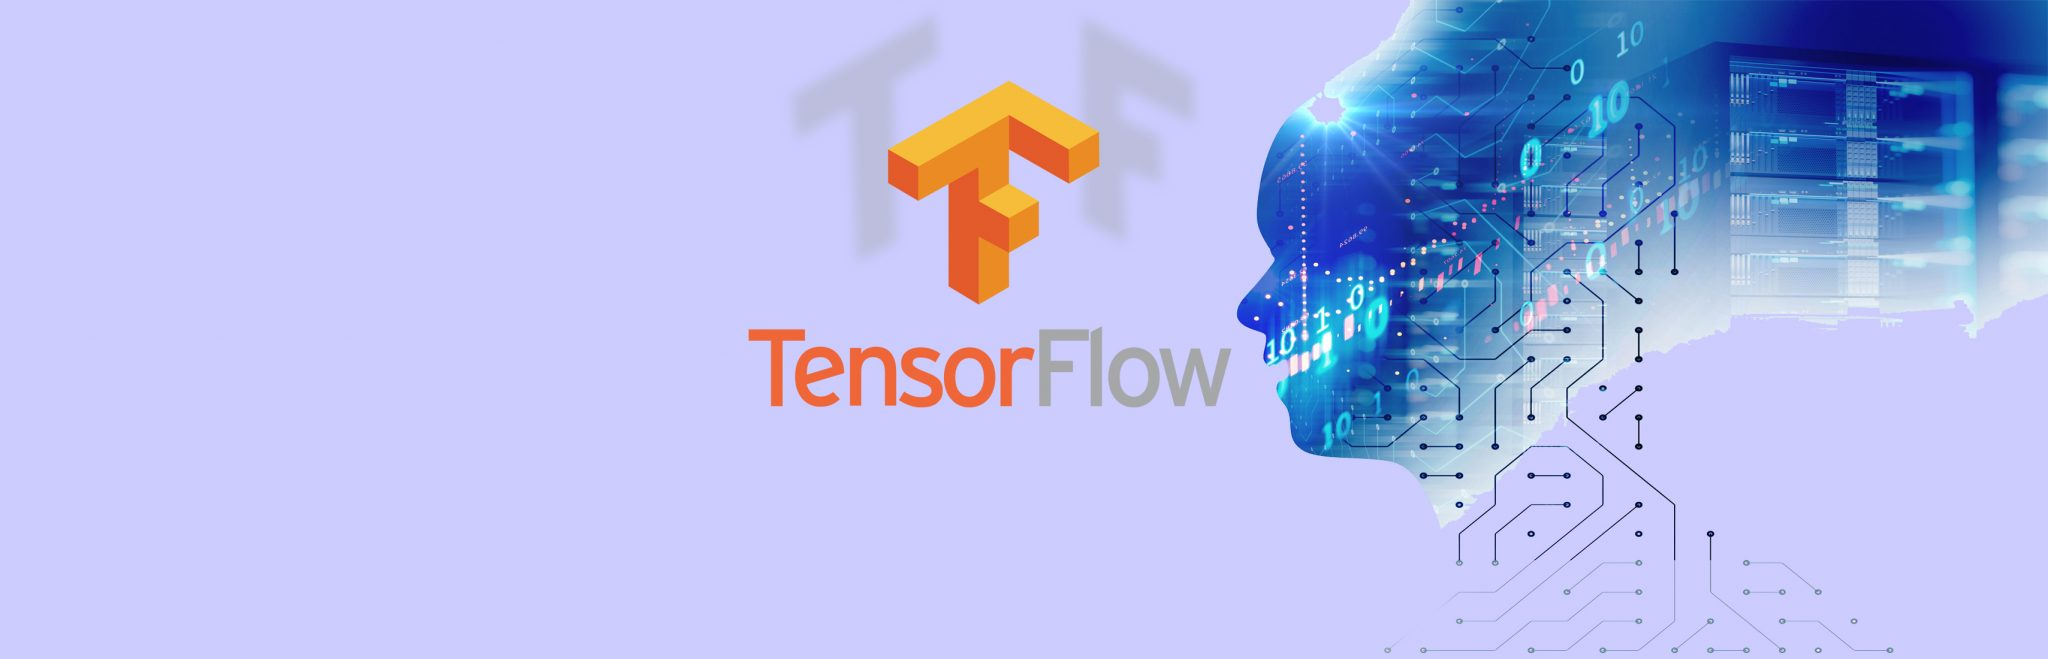 Learn TensorFlow Fundamentals in 20 Minutes